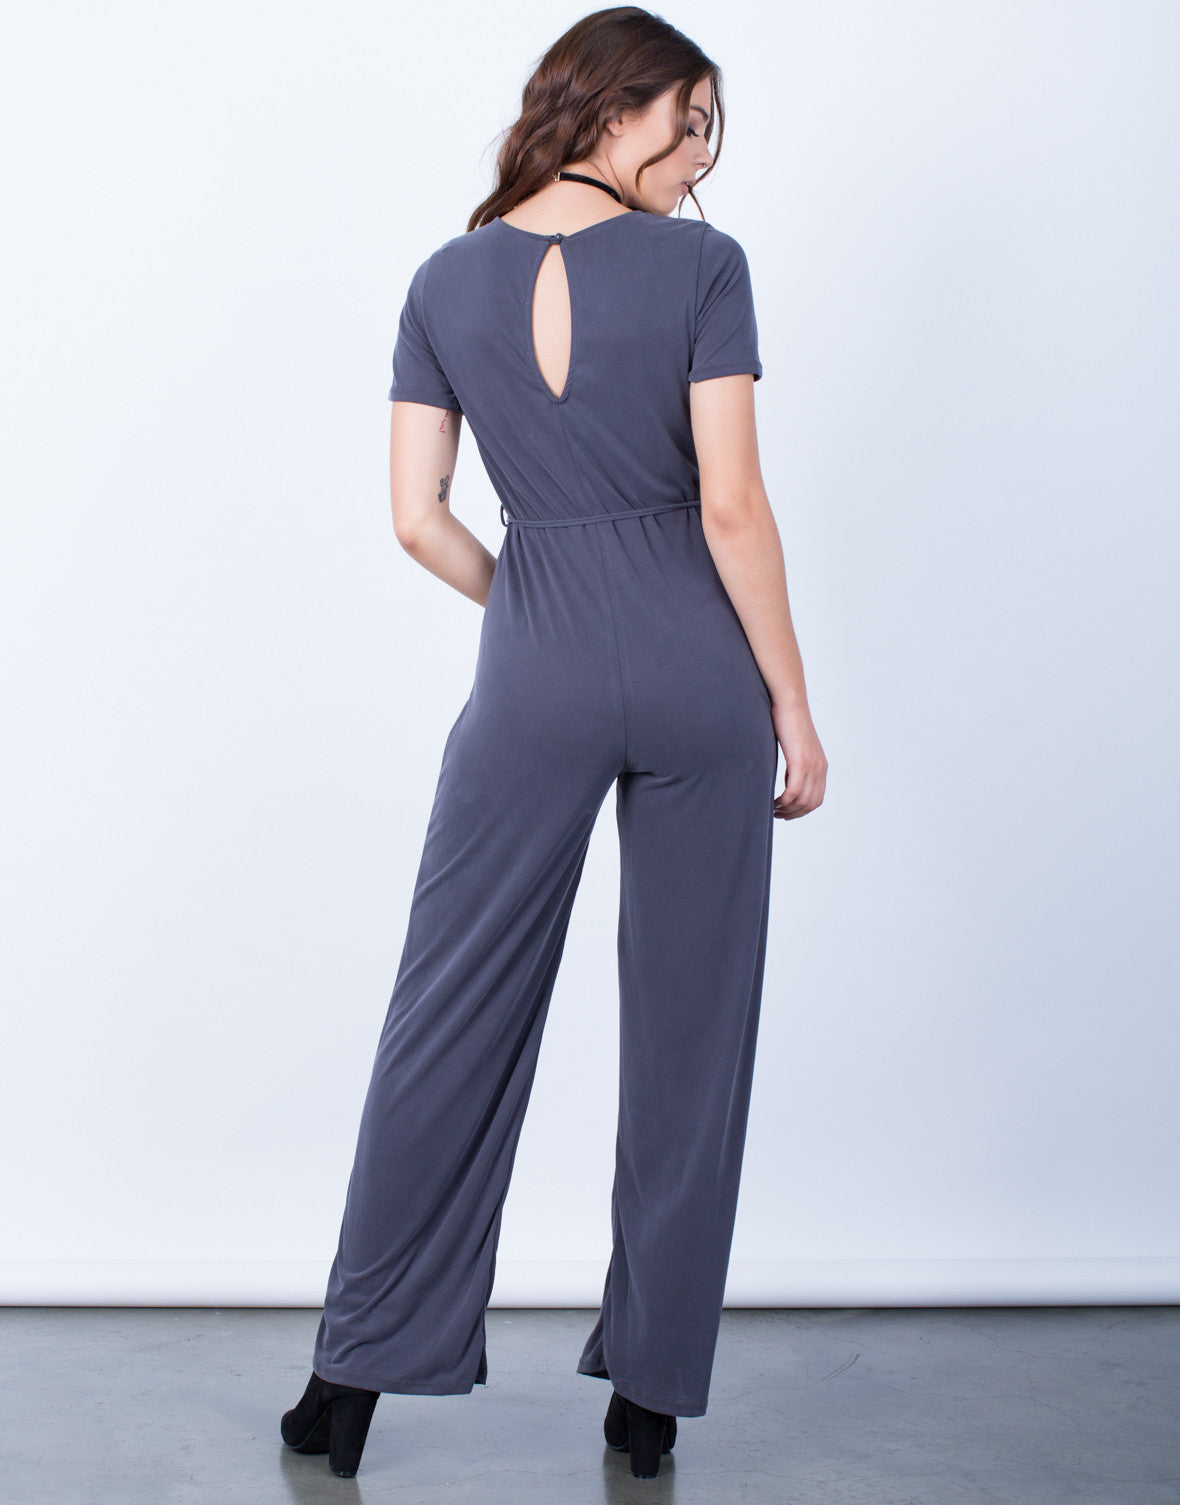 Back View of Have a Hold on You Jumpsuit